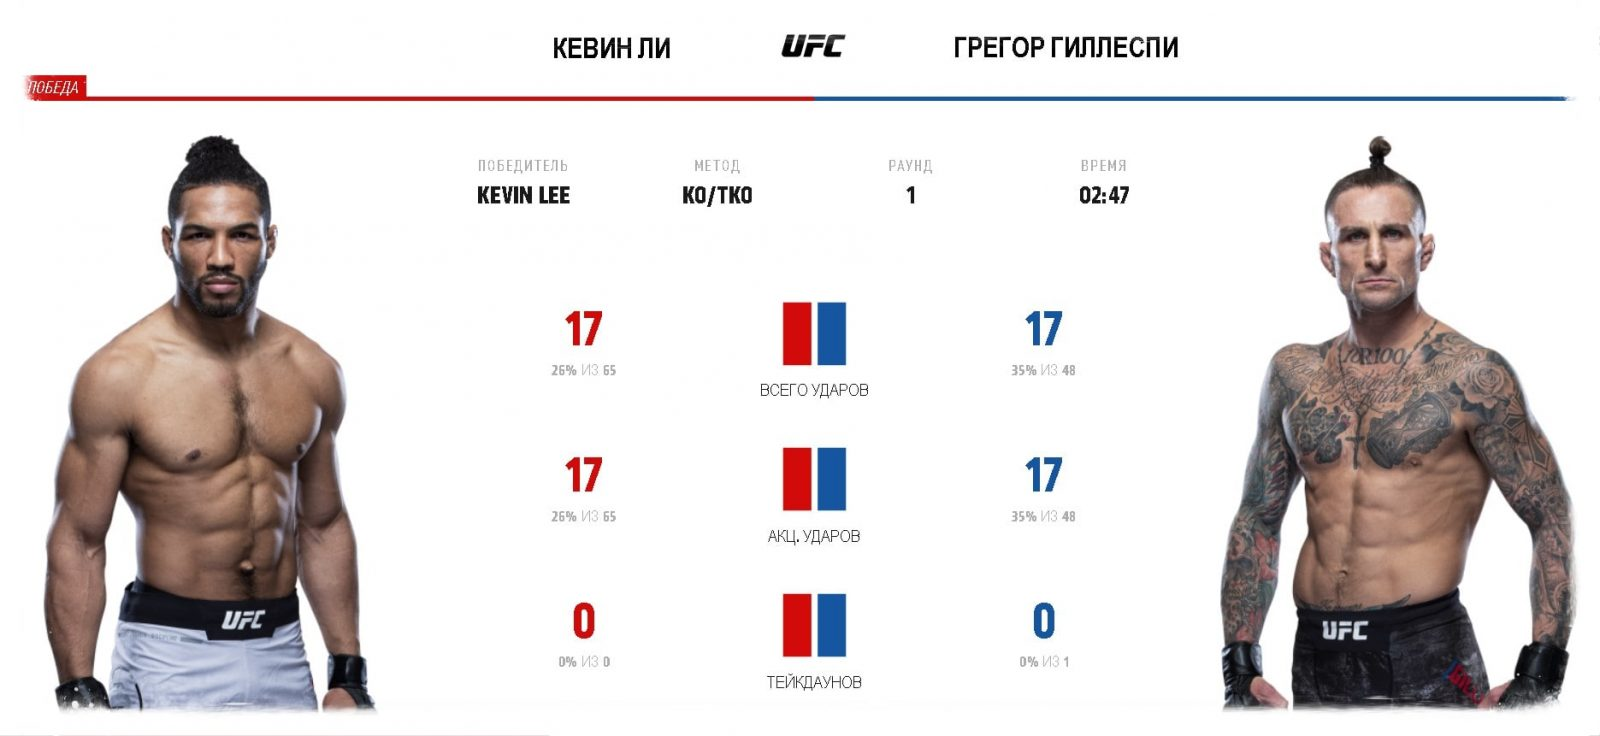 video-boya-kevin-li-gregor-gillespi-ufc-244